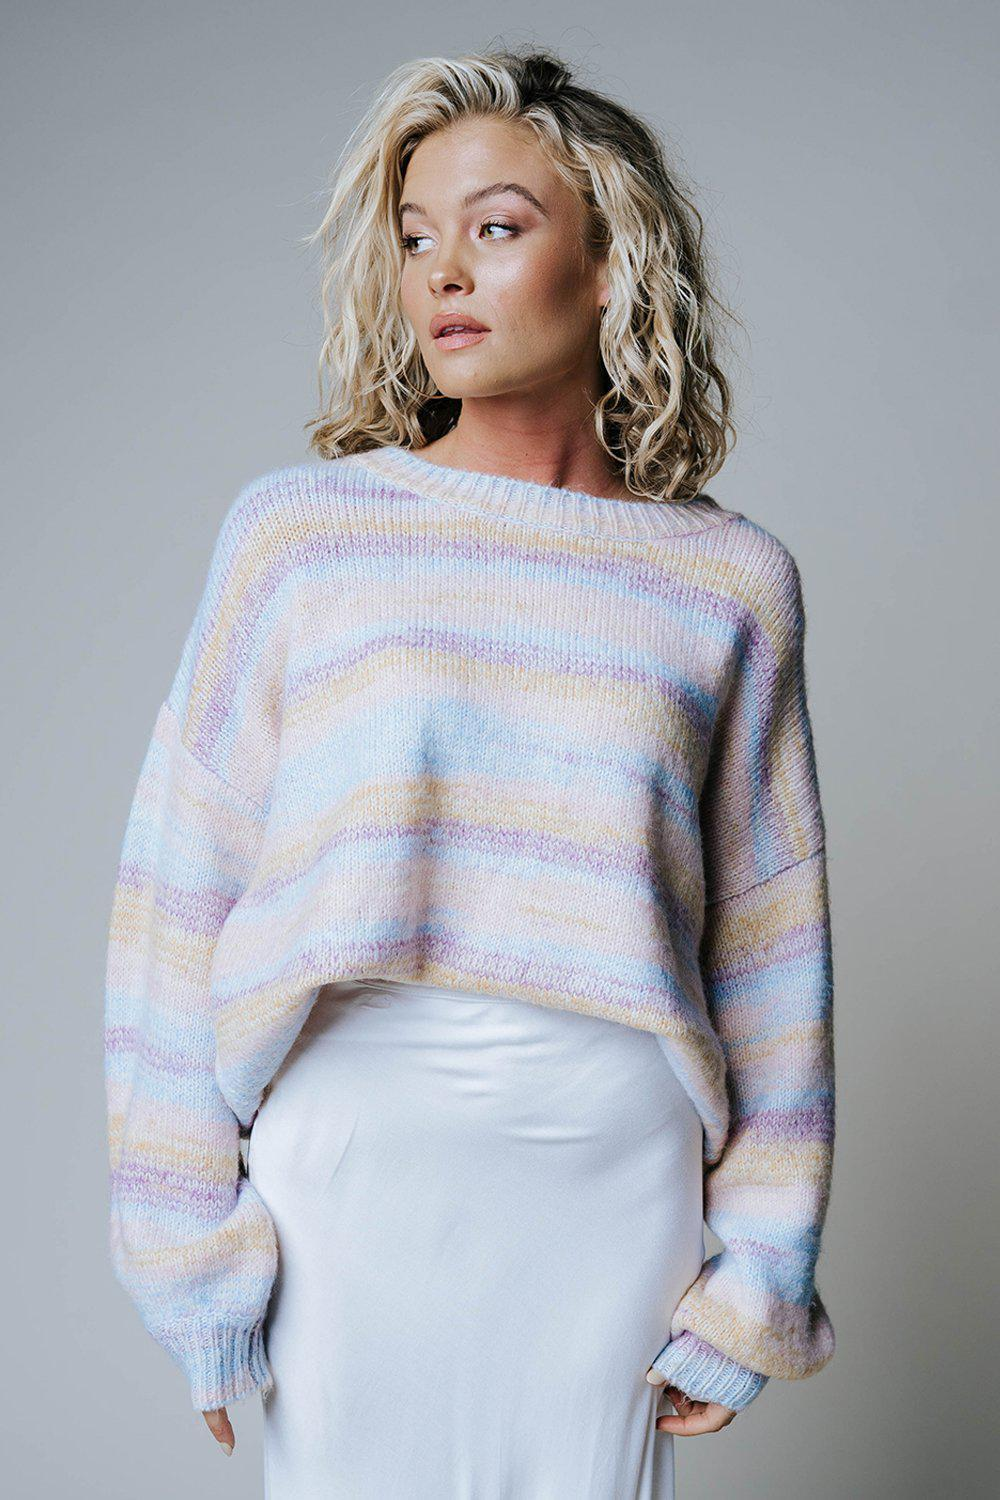 Cotton Candy Striped Oversized Pullover-Top-n/a-S-Clad & Cloth